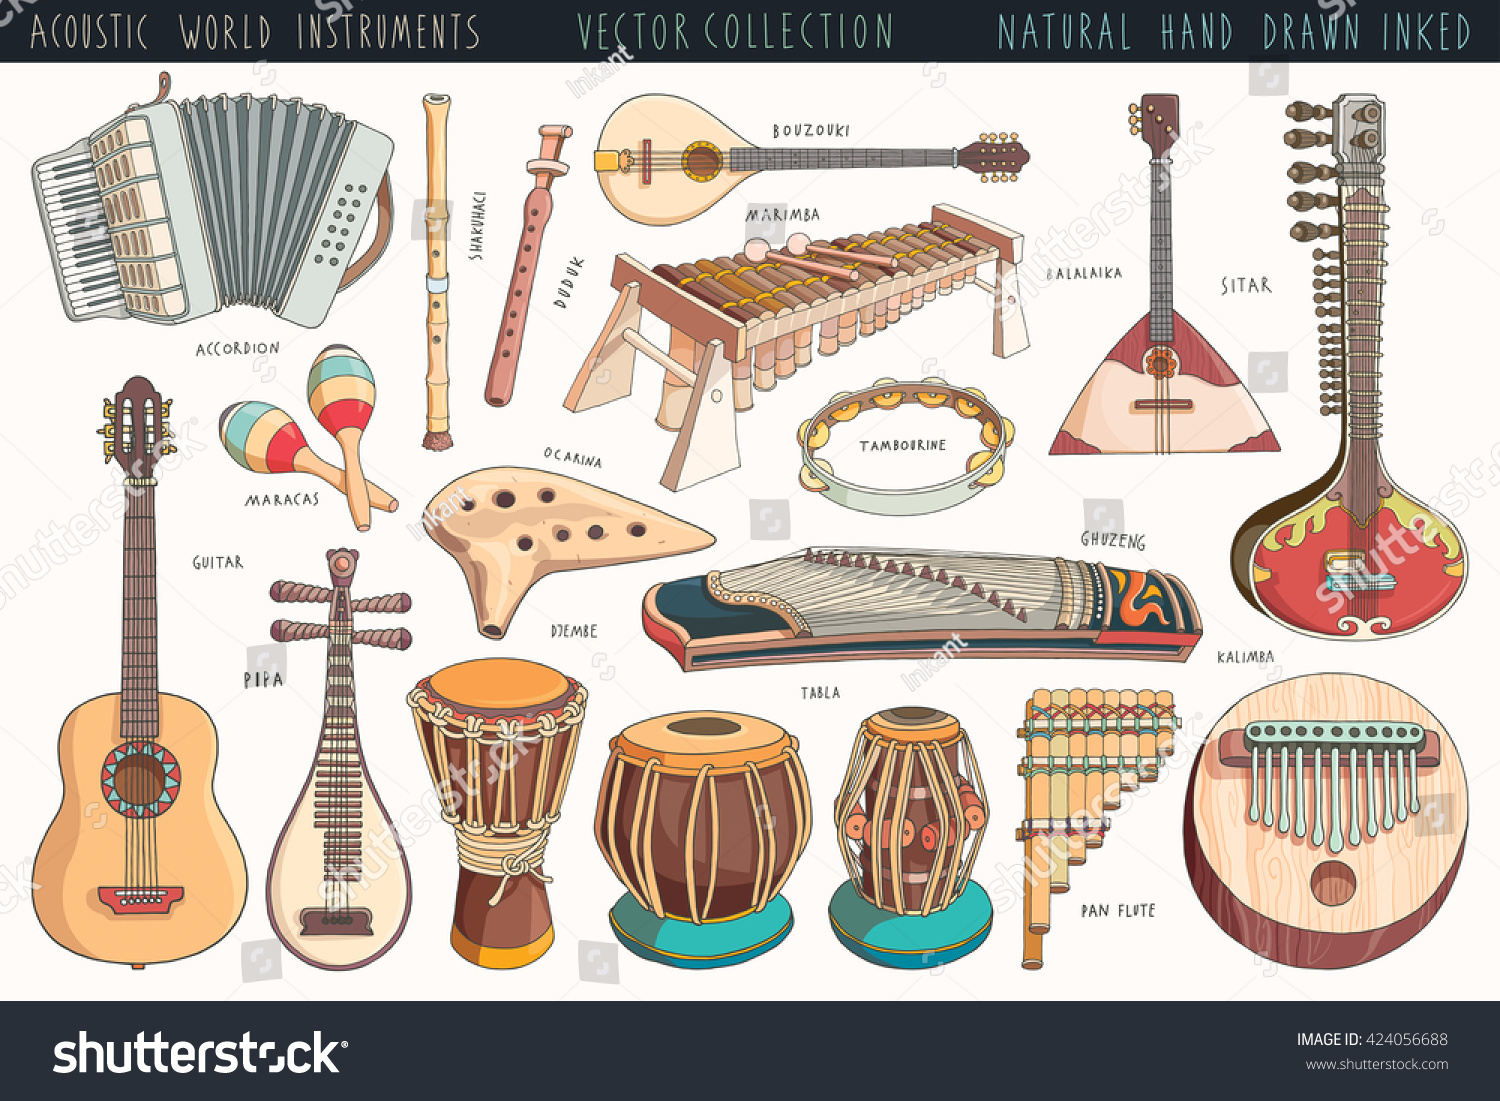 Musical Instruments From Different Cultures - Scalien